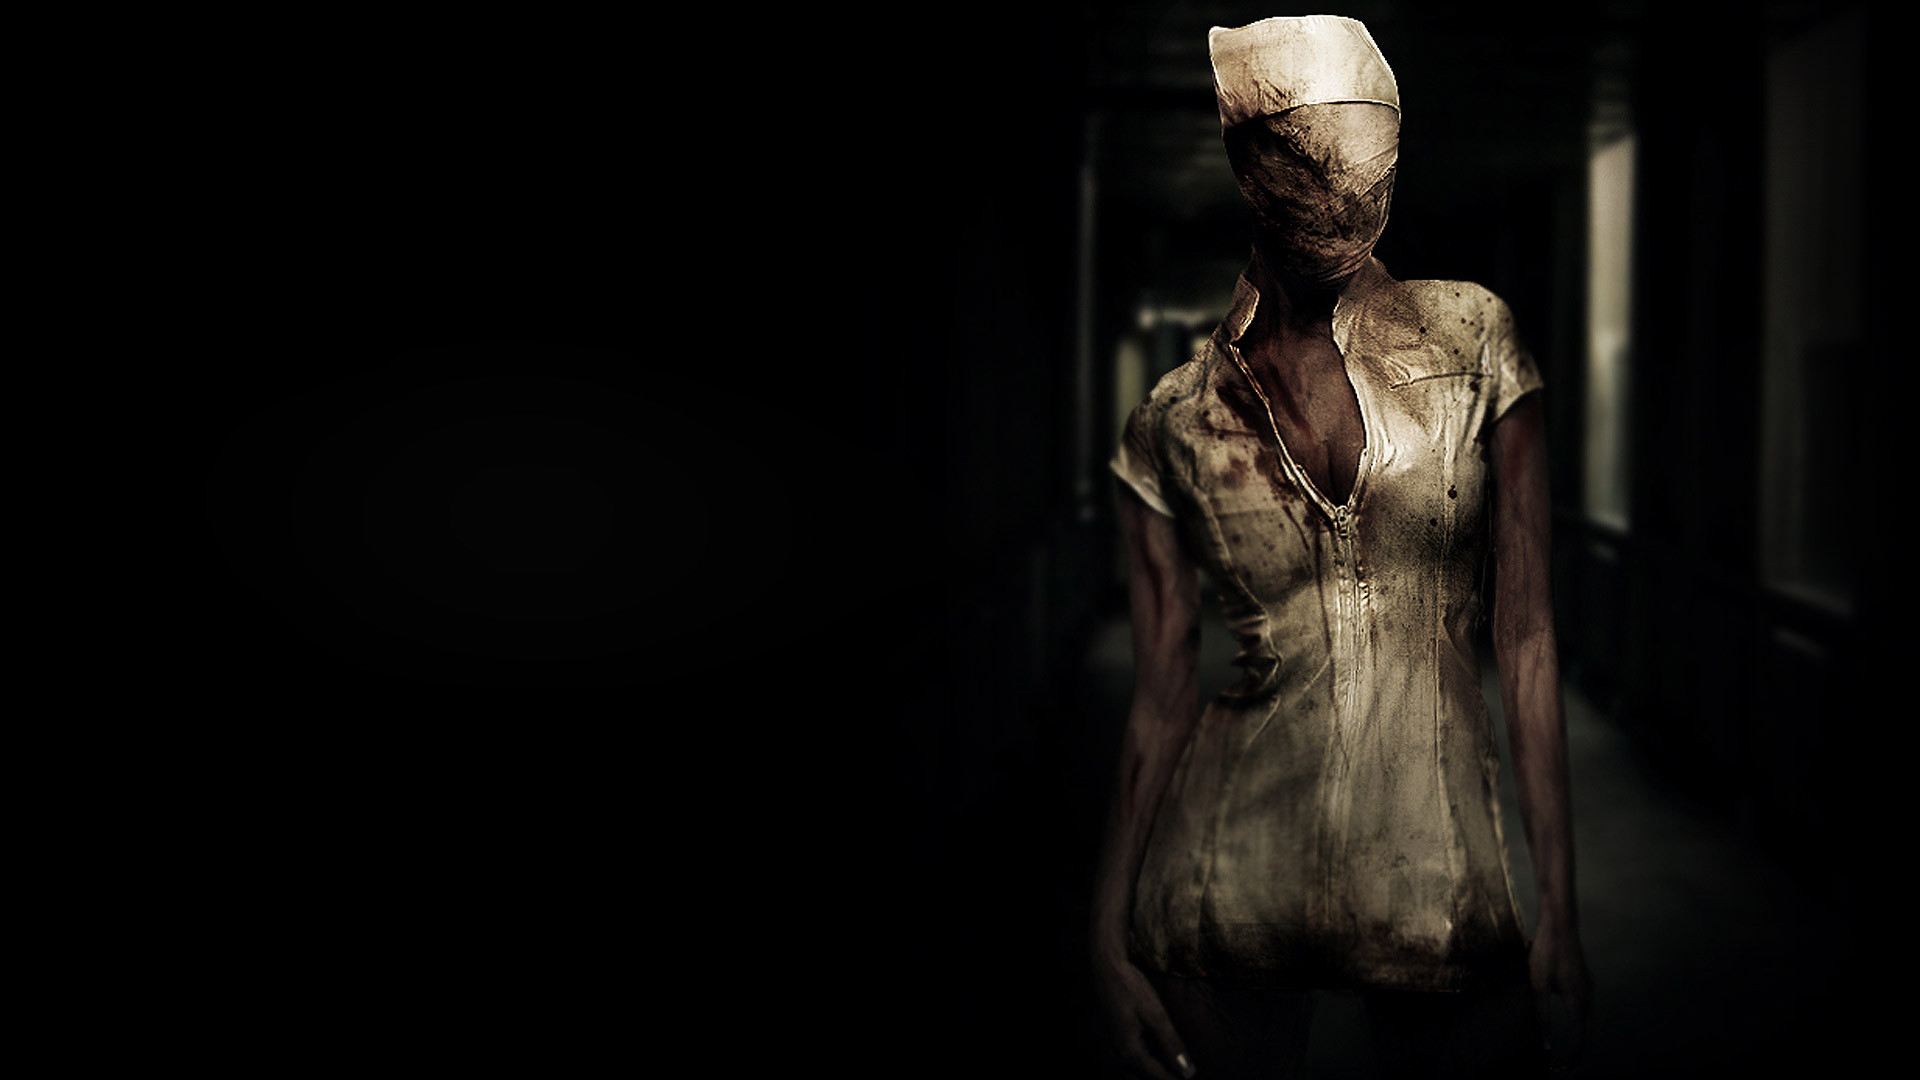 Zombies Wallpapers Wallpaper × Zombies Wallpapers   HD Wallpapers    Pinterest   Zombie wallpaper, Wallpaper and Wallpaper backgrounds